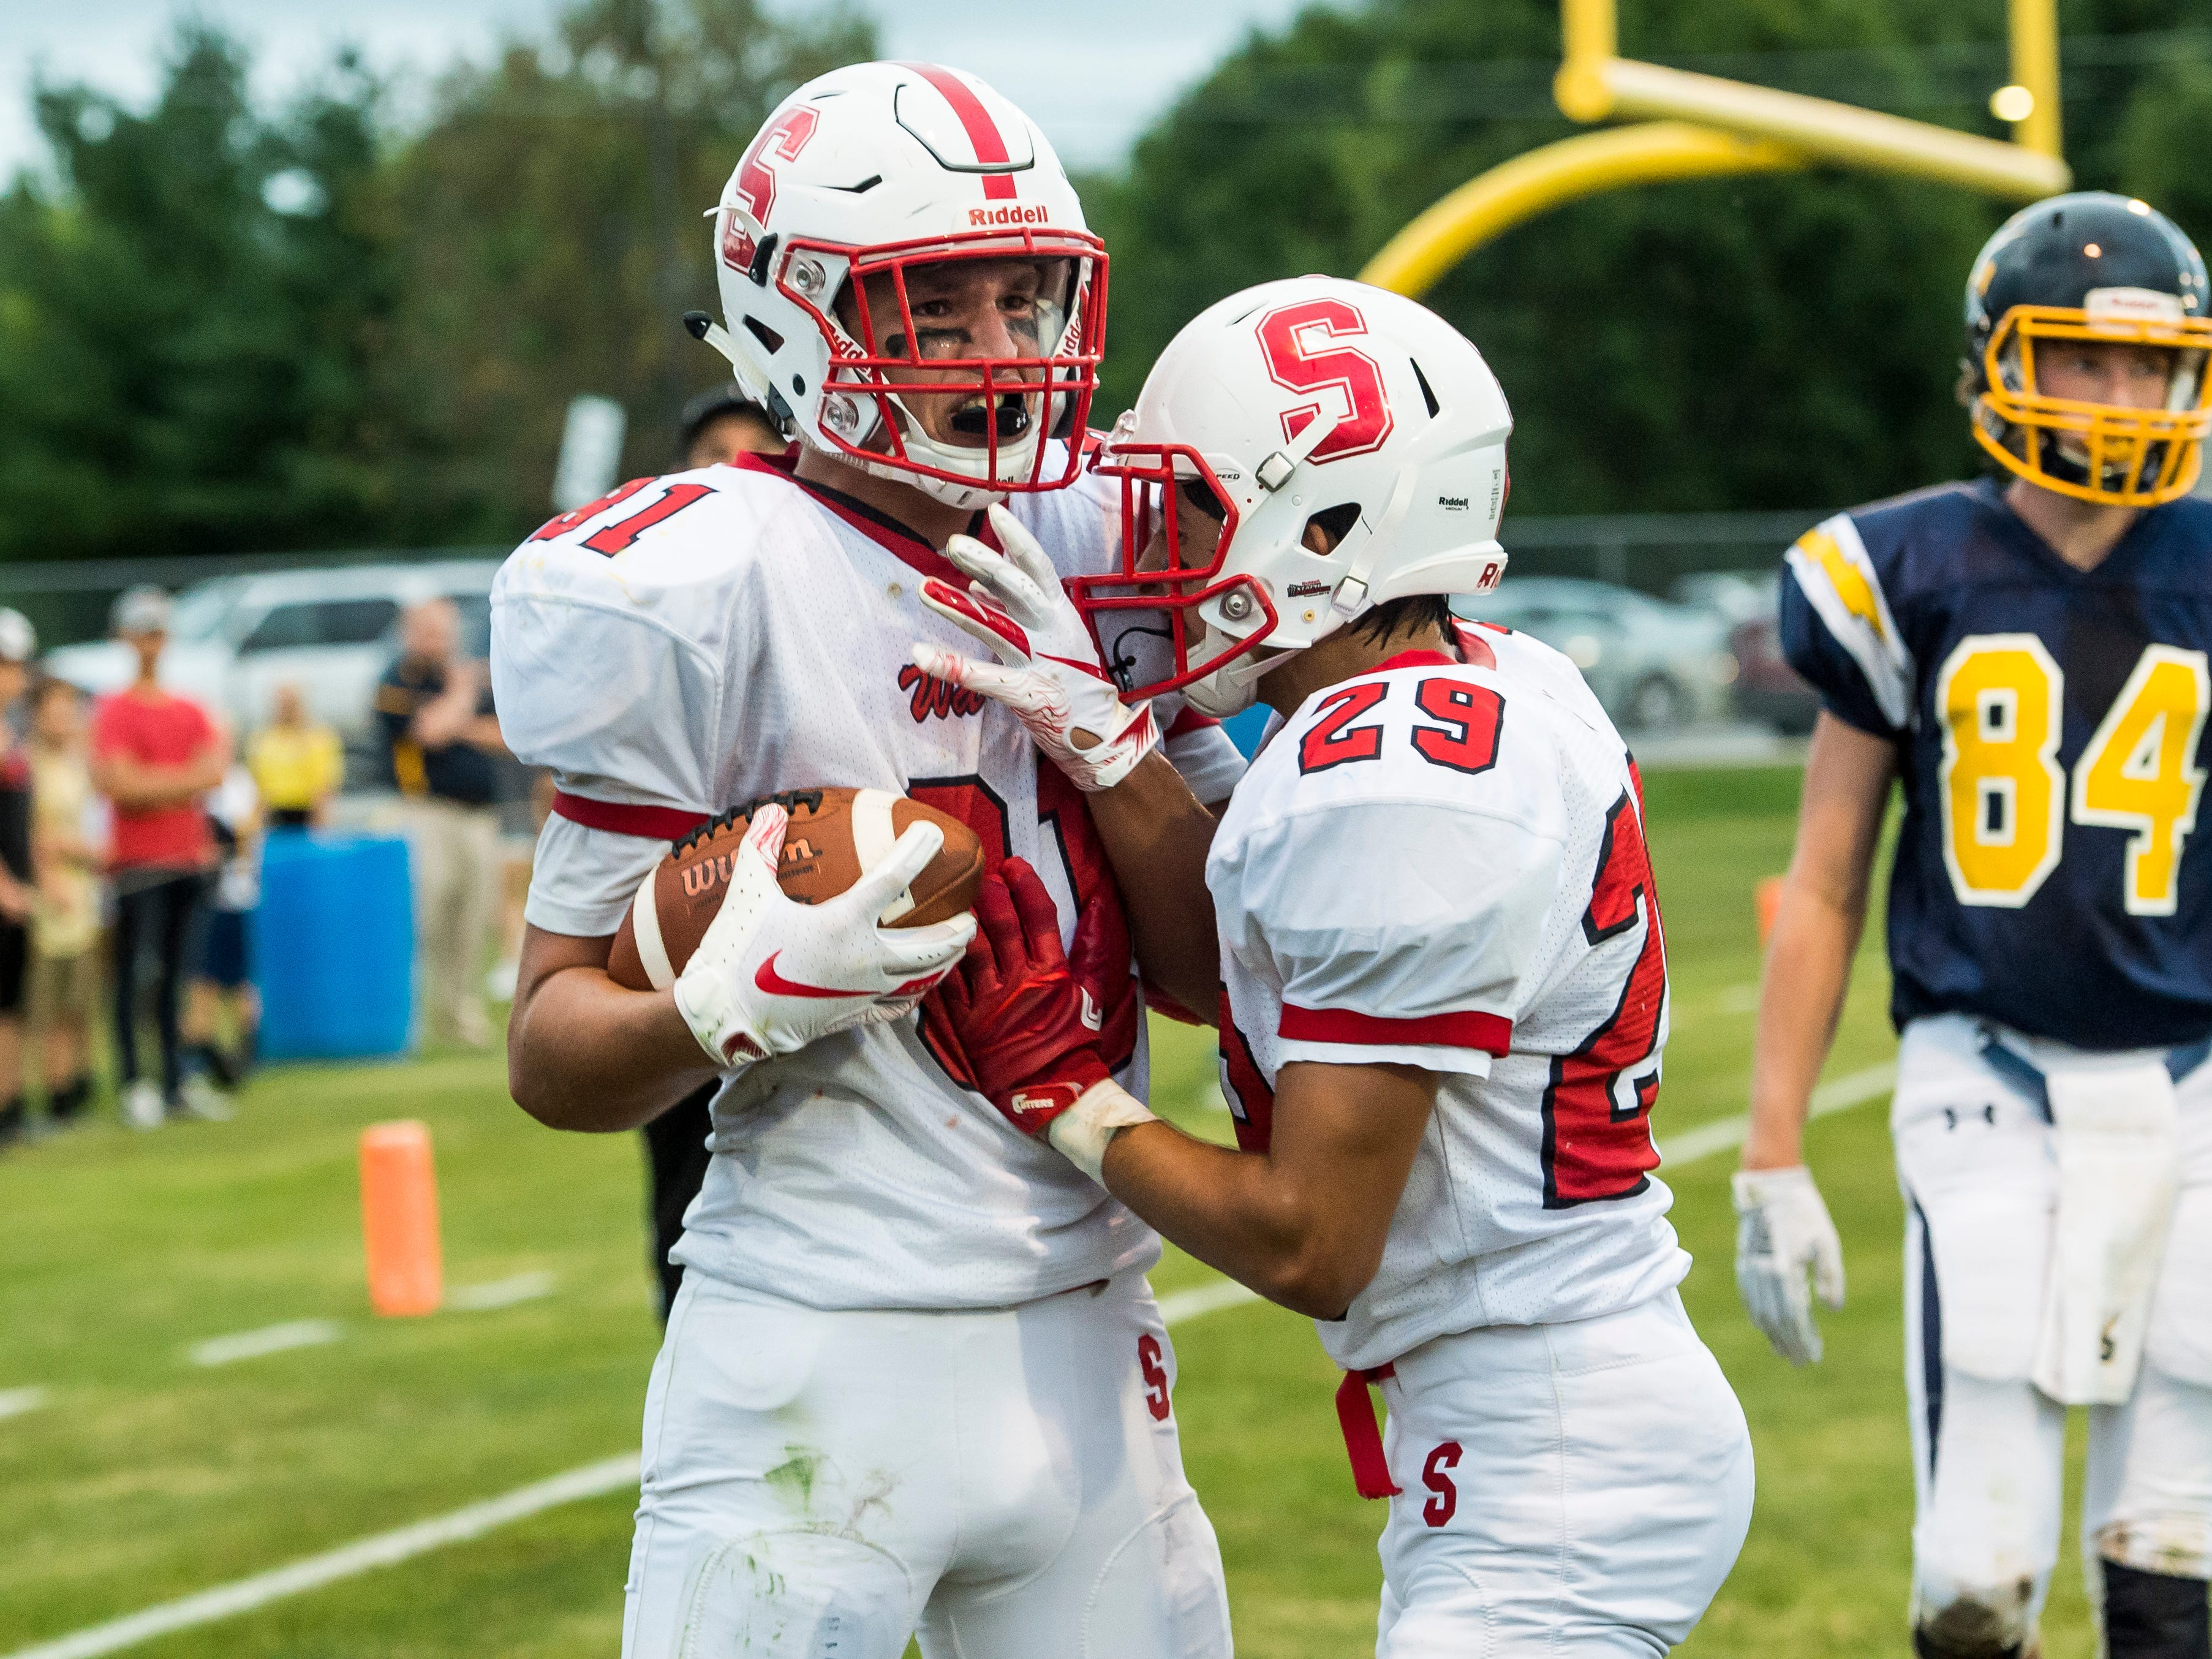 Susquehannock's Zach Green celebrates with teammate Harry Pecunes (29) after scoring a touchdown against Littlestown on Friday, August 31, 2018. The Warriors fell to the Bolts 29-14.